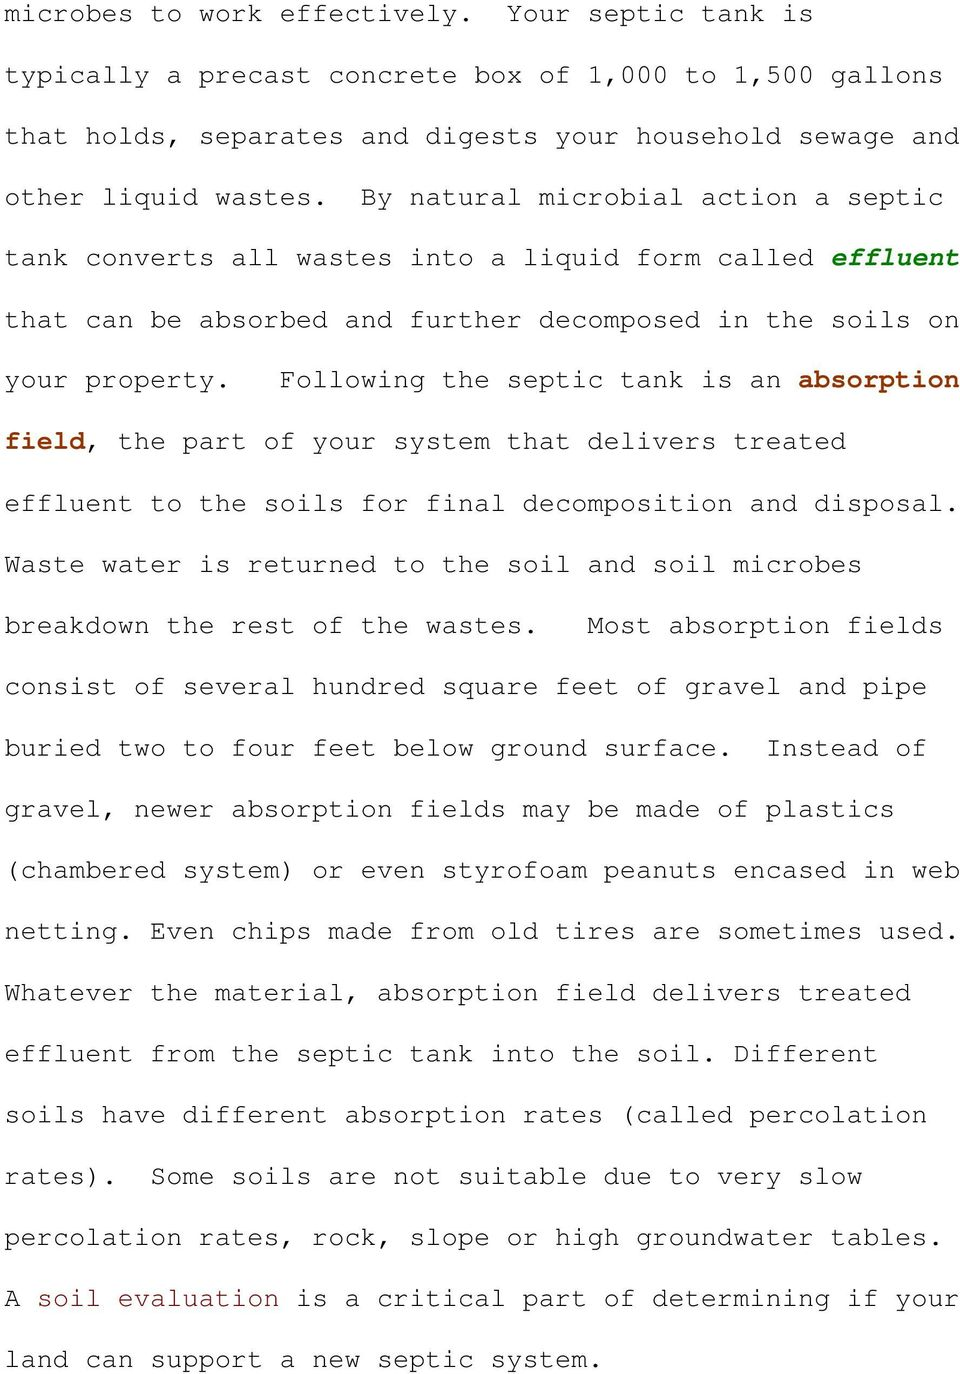 Following the septic tank is an absorption field, the part of your system that delivers treated effluent to the soils for final decomposition and disposal.